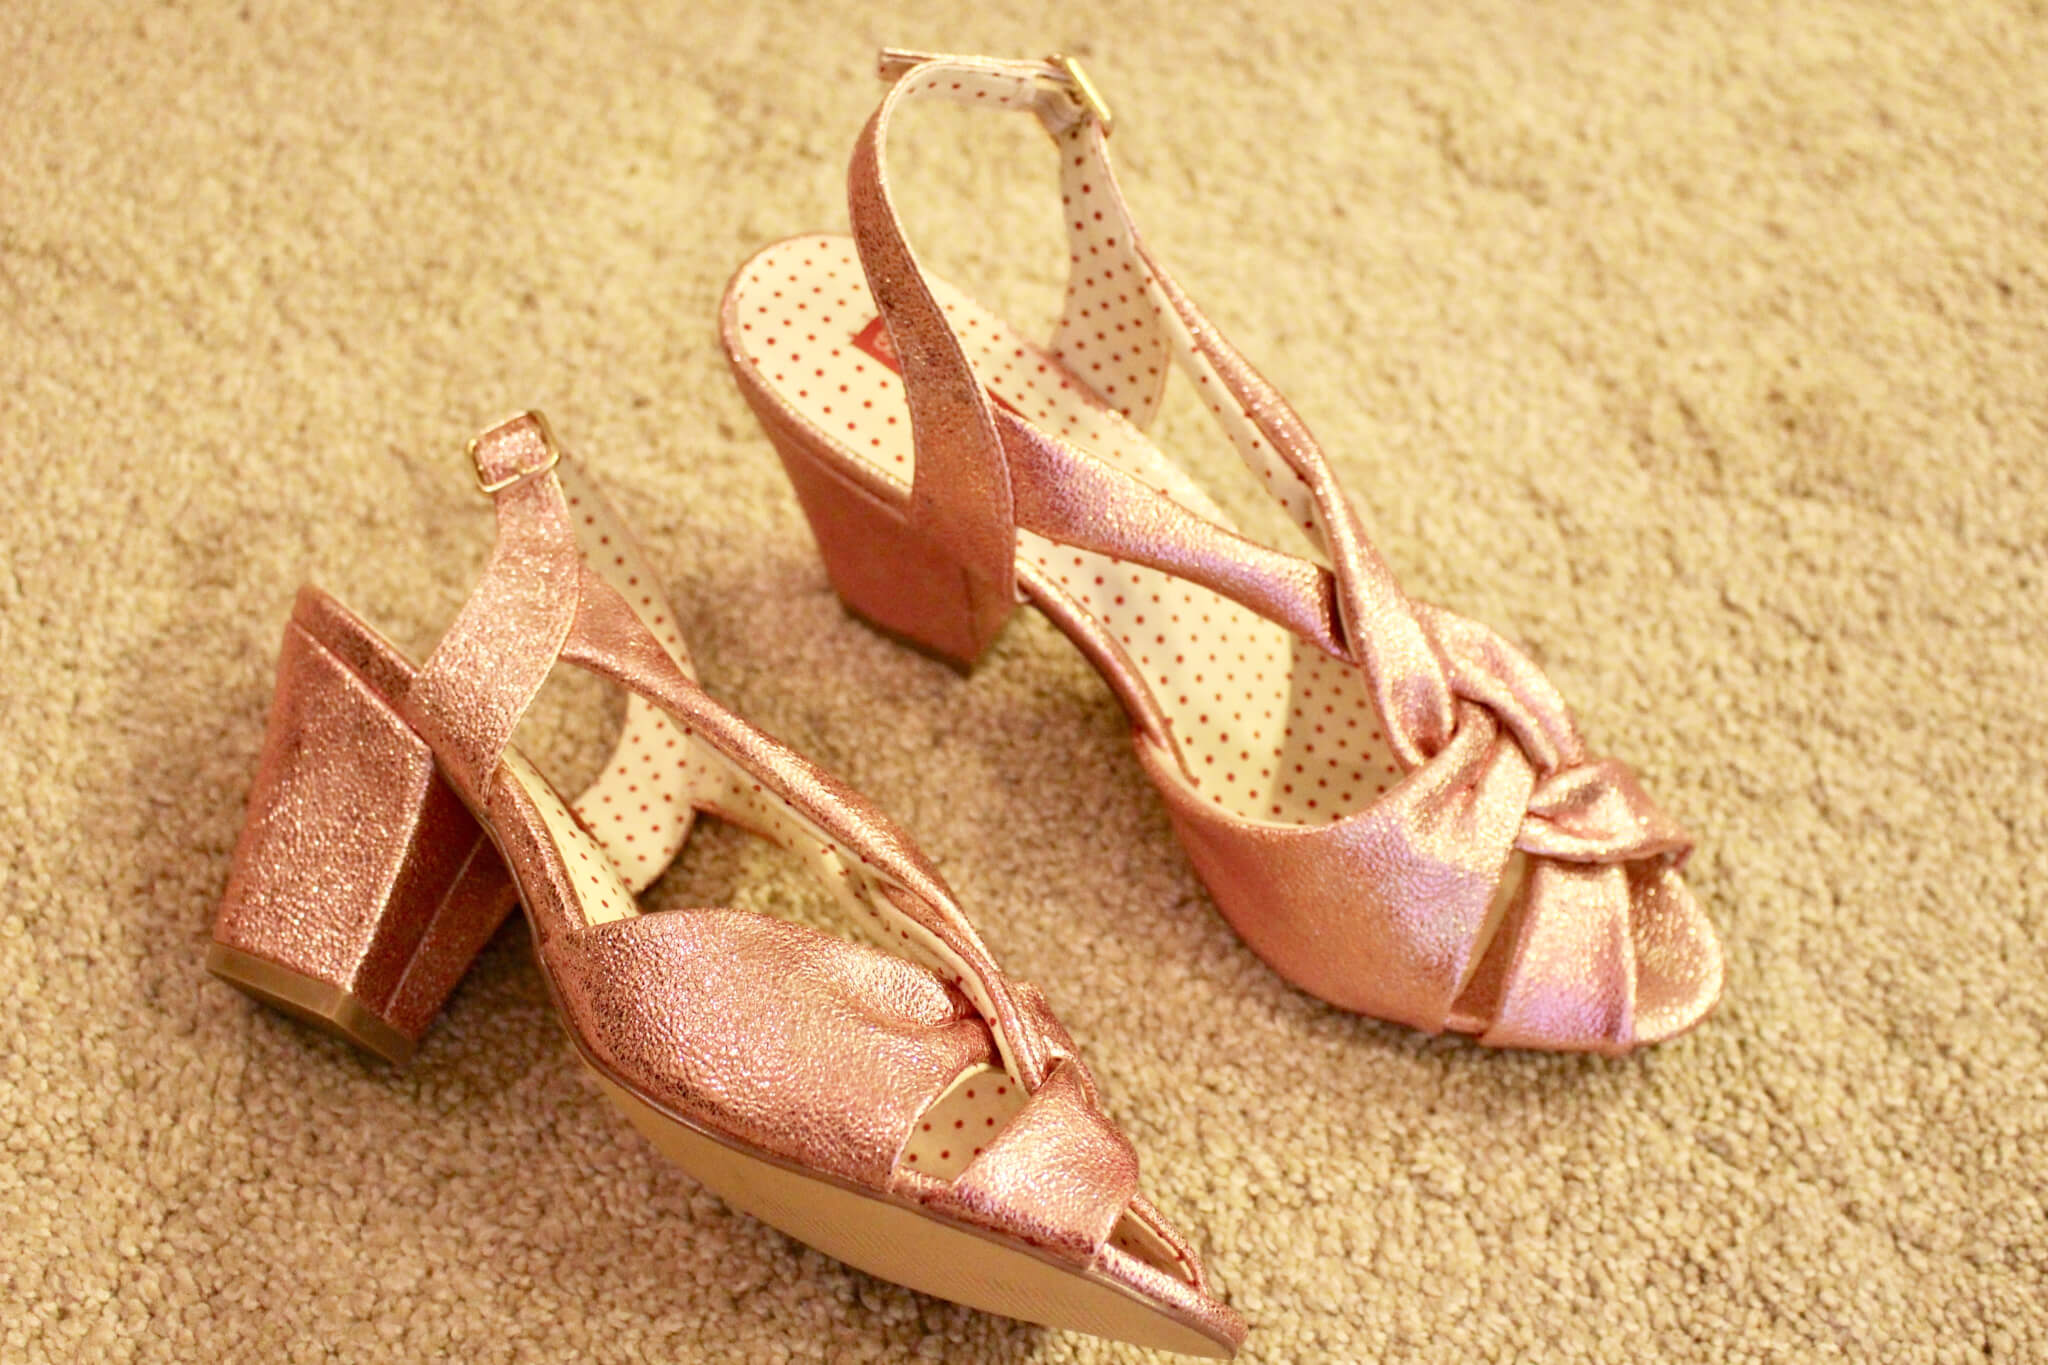 picture of Handal sandals